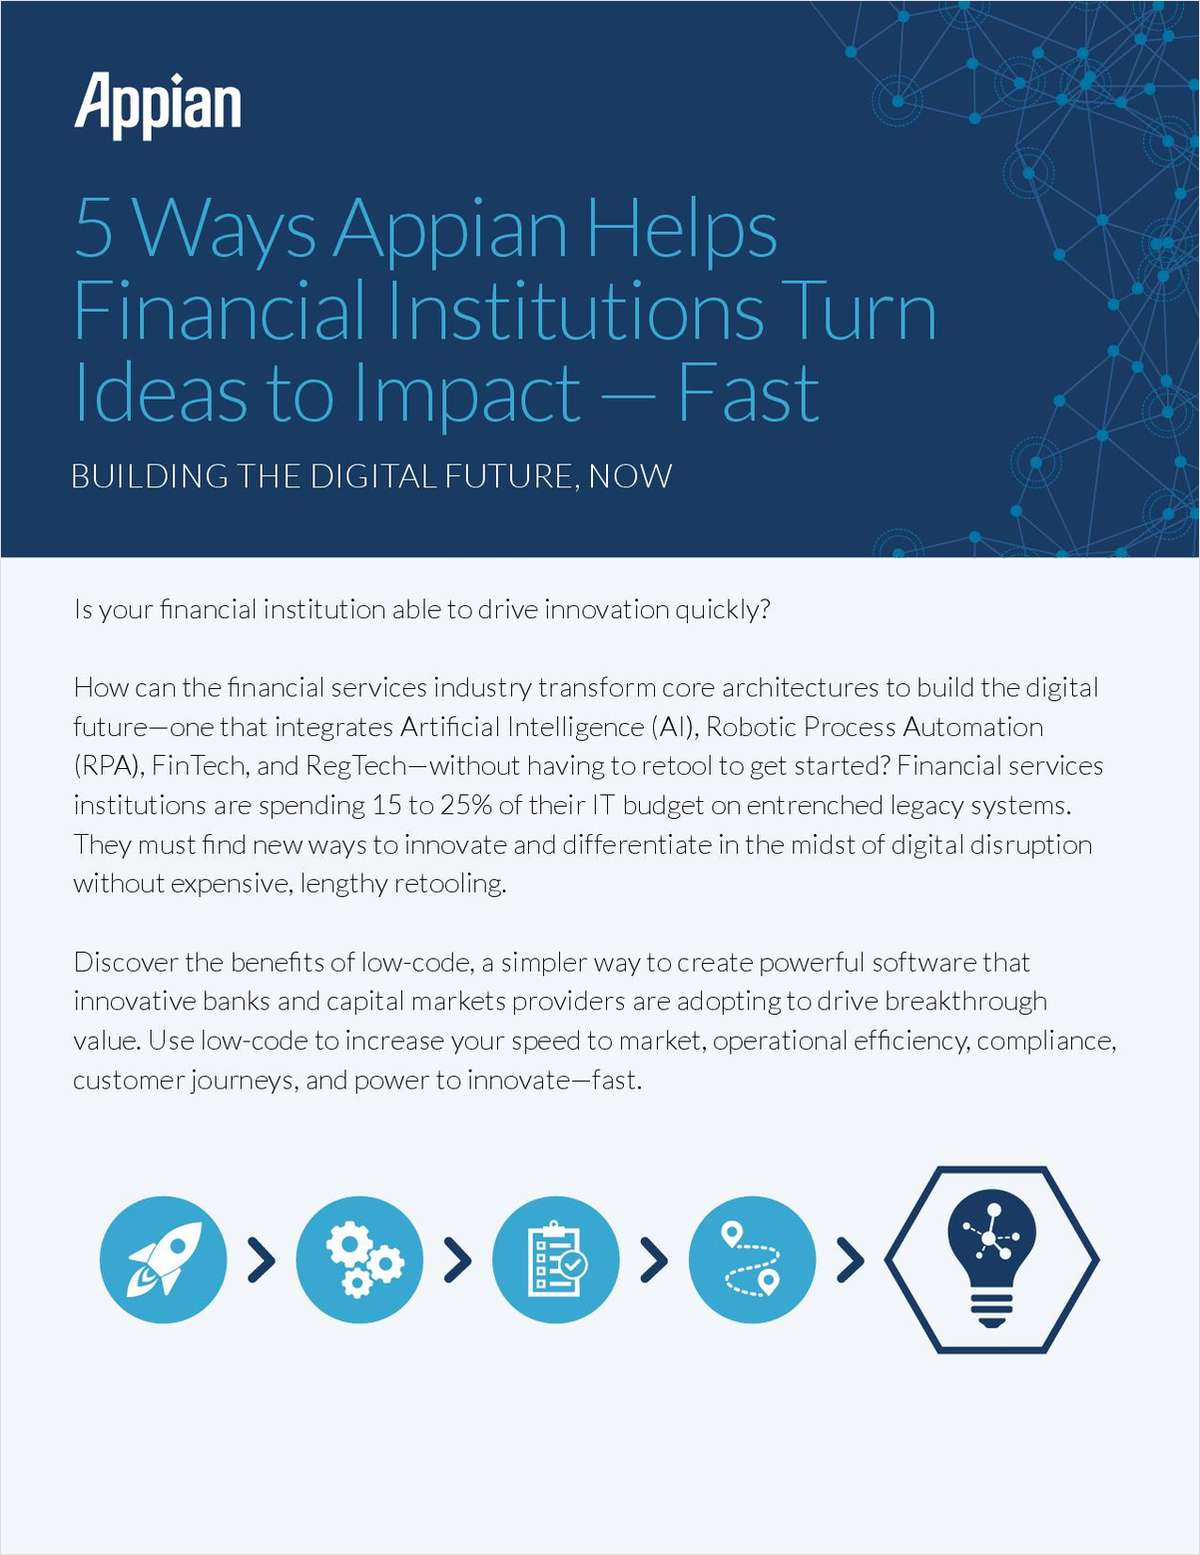 Five Ways Appian Helps Financial Institutions Turn Ideas to Impact -- Fast